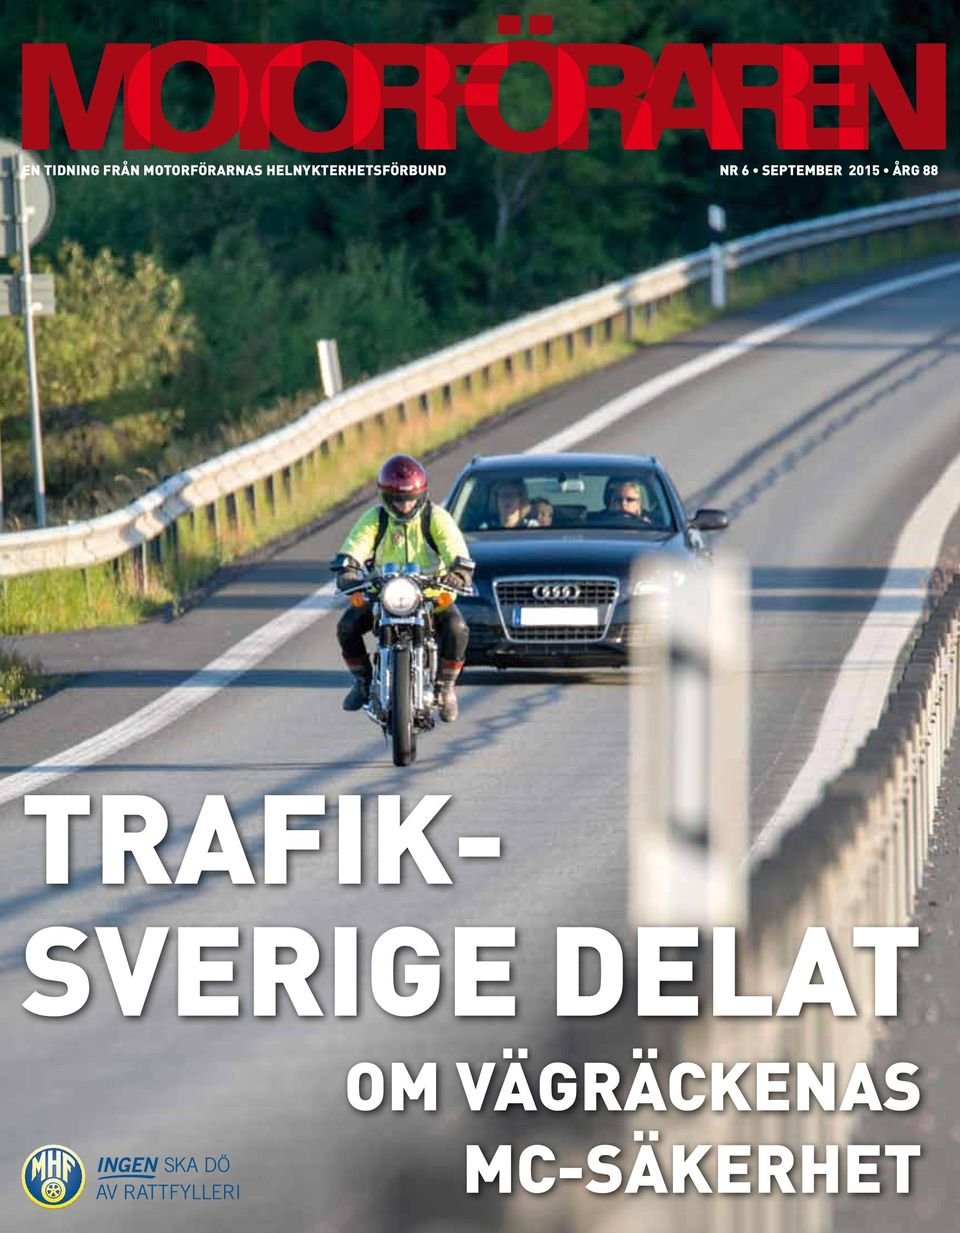 september 2015 Årg 88 TRAFIK-